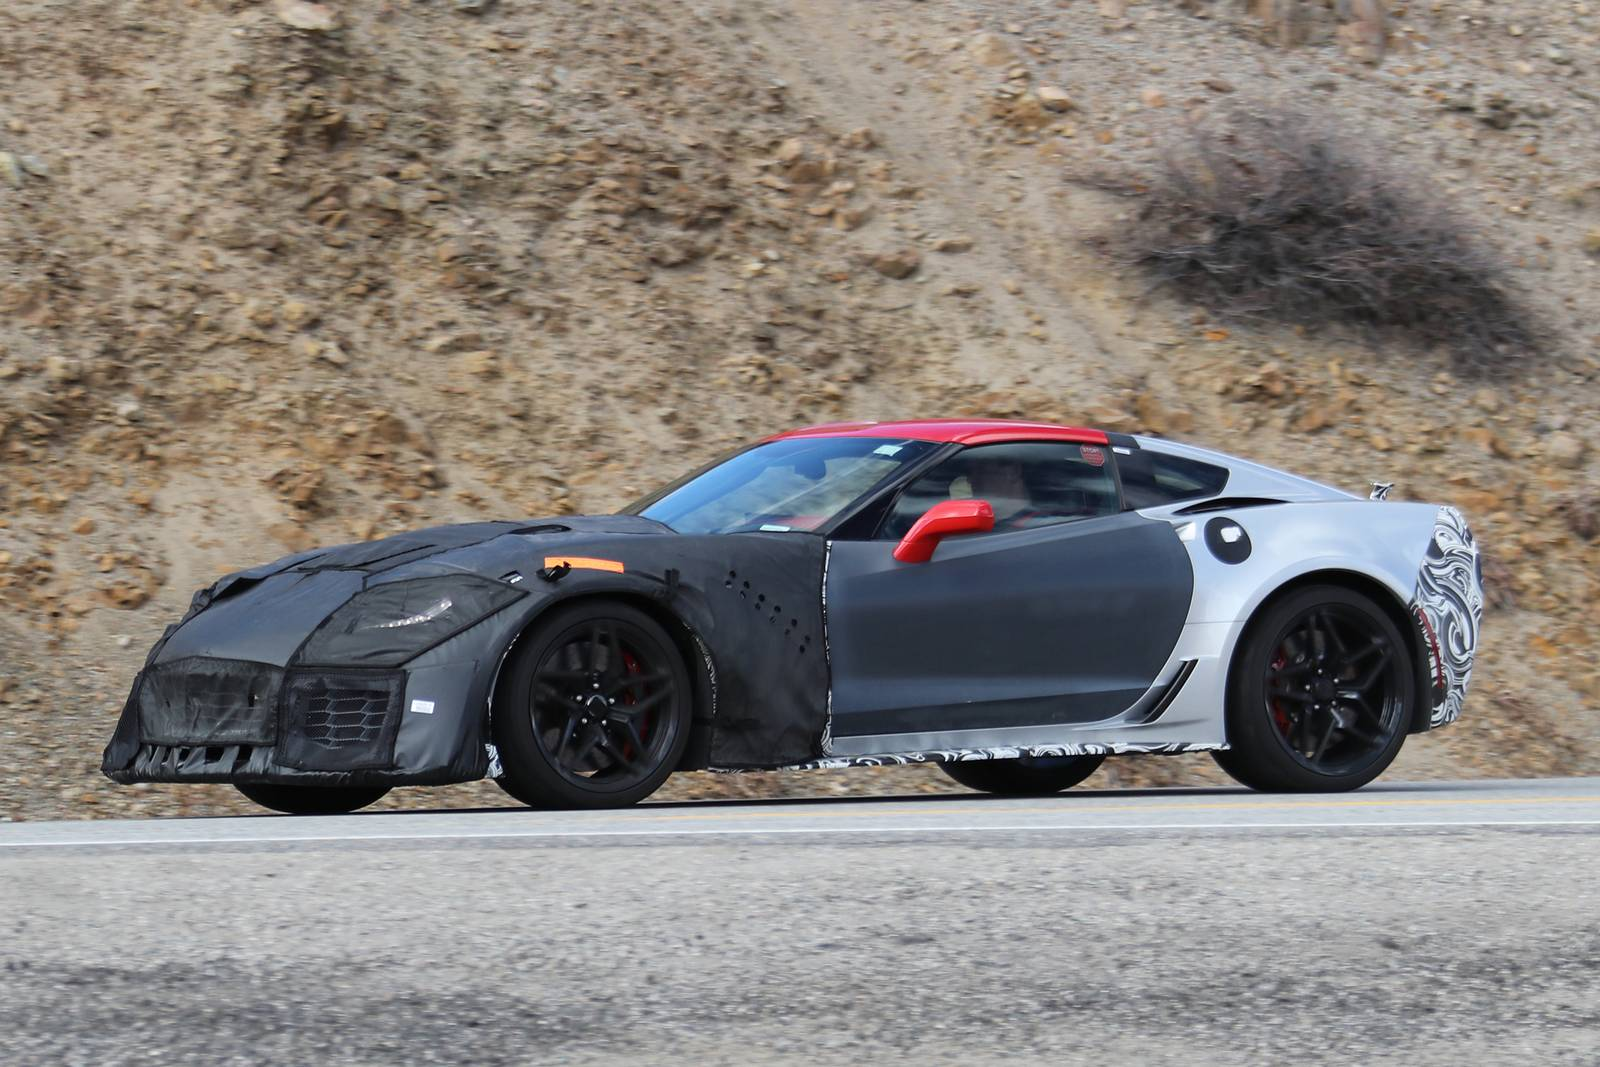 2018 corvette zr1 latest spy shots 700hp and more gtspirit. Black Bedroom Furniture Sets. Home Design Ideas